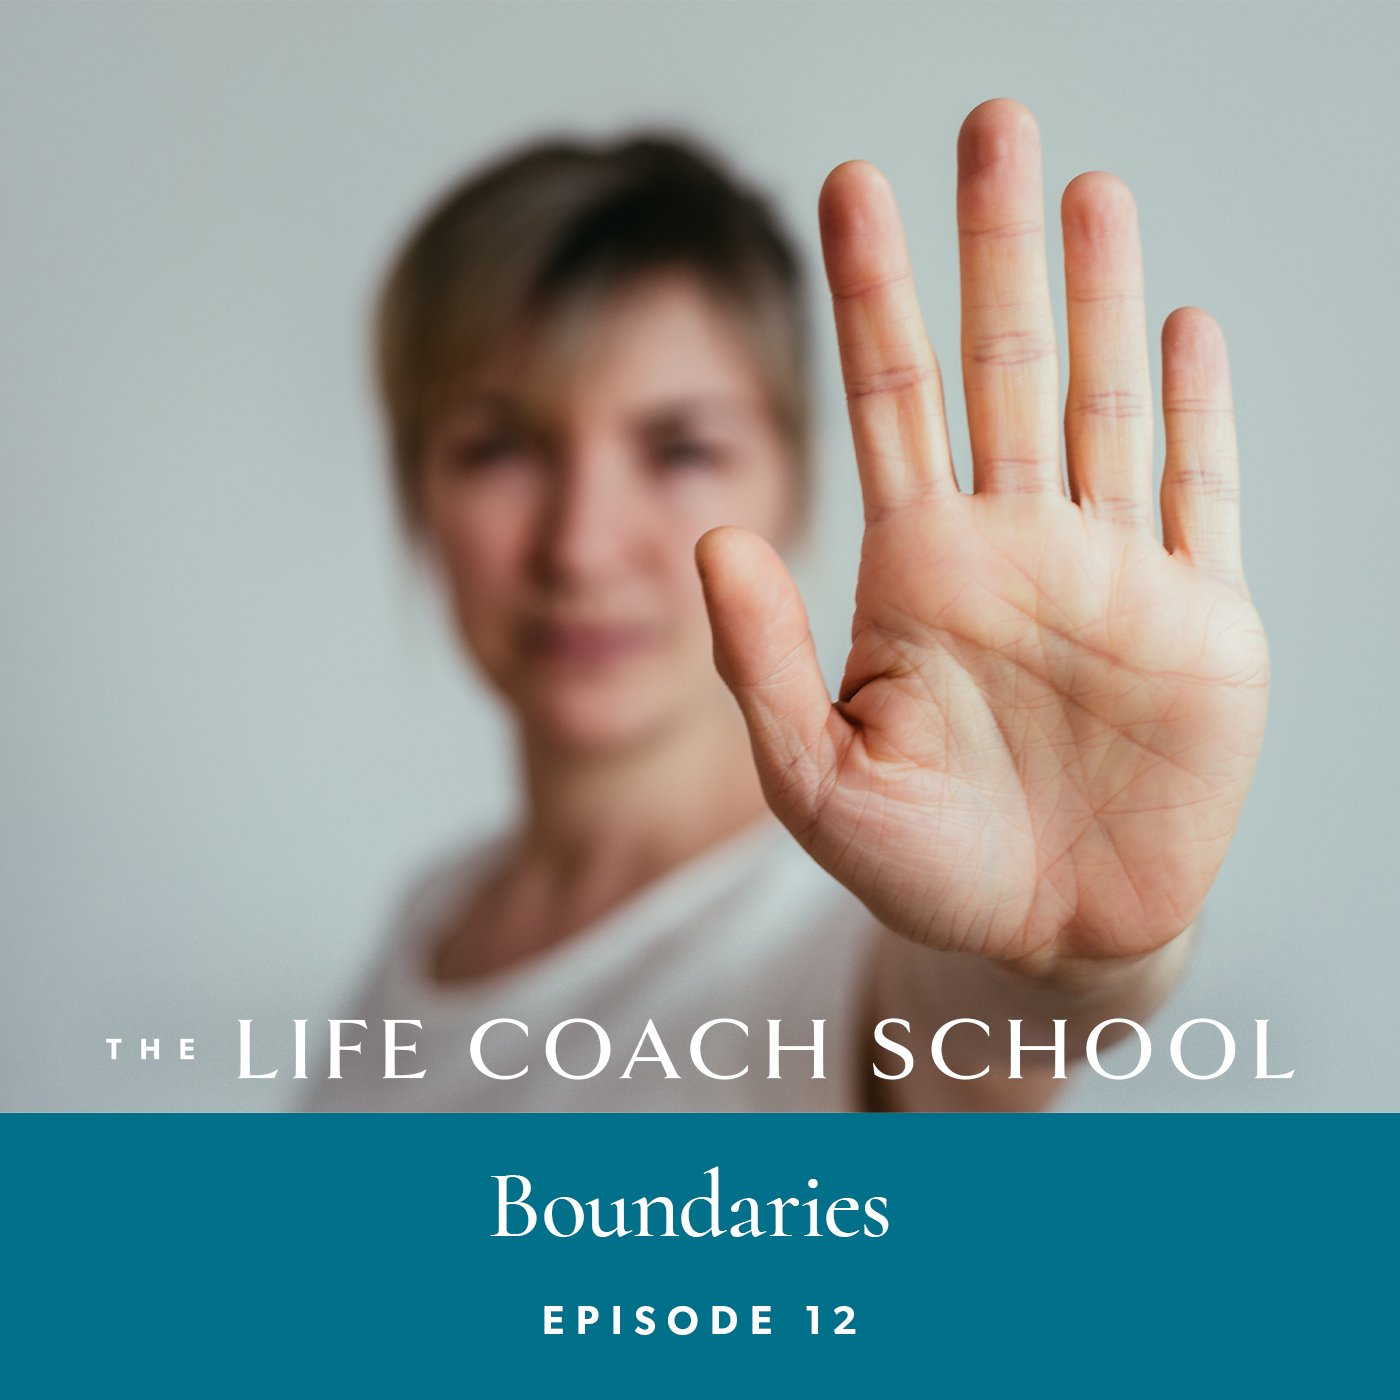 The Life Coach School Podcast with Brooke Castillo | Episode 12 | Boundaries